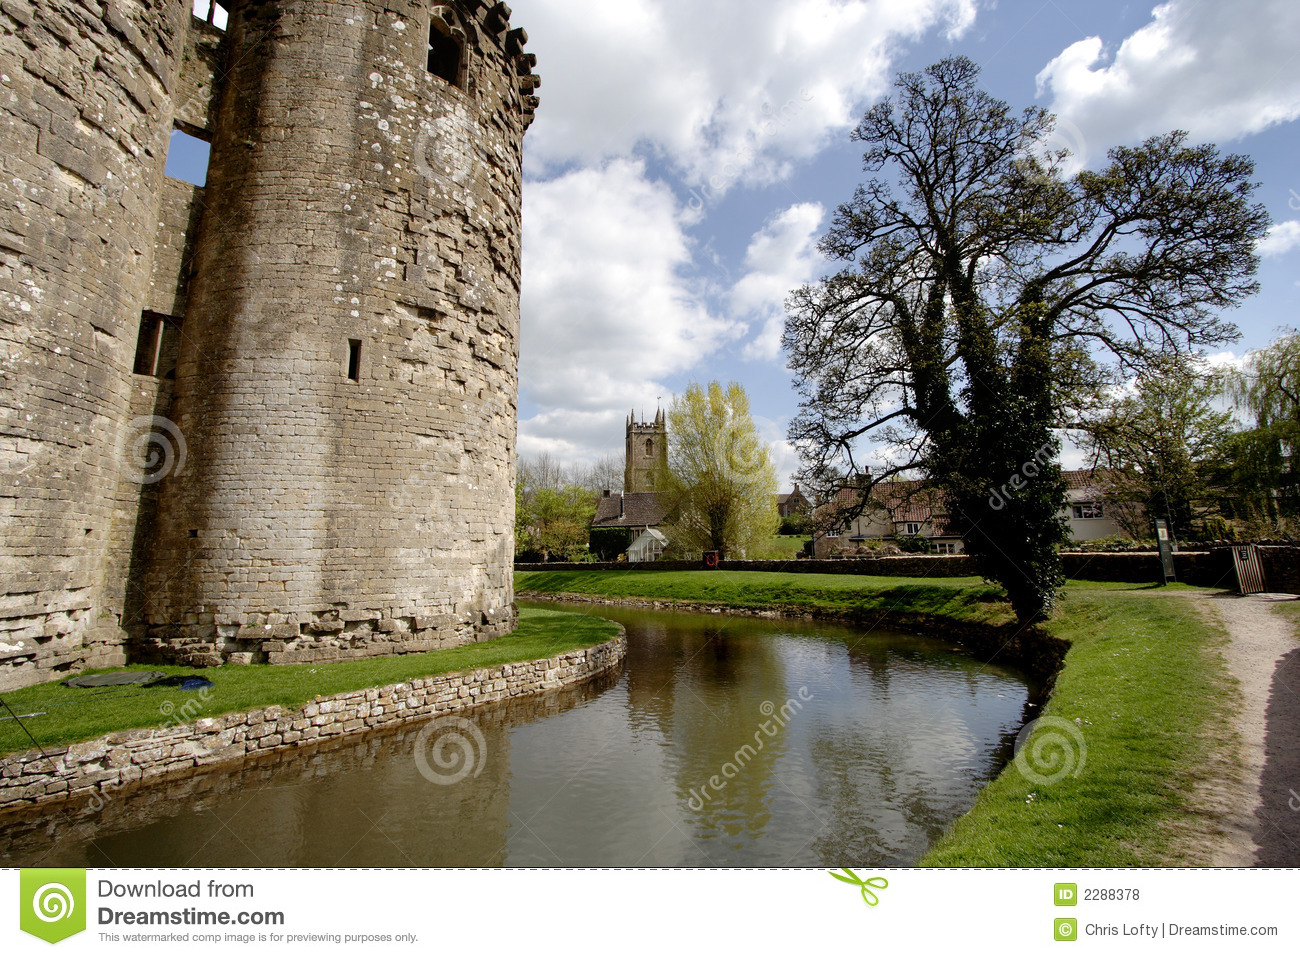 Castle And Moat Royalty Free Stock Photos Image 2288378